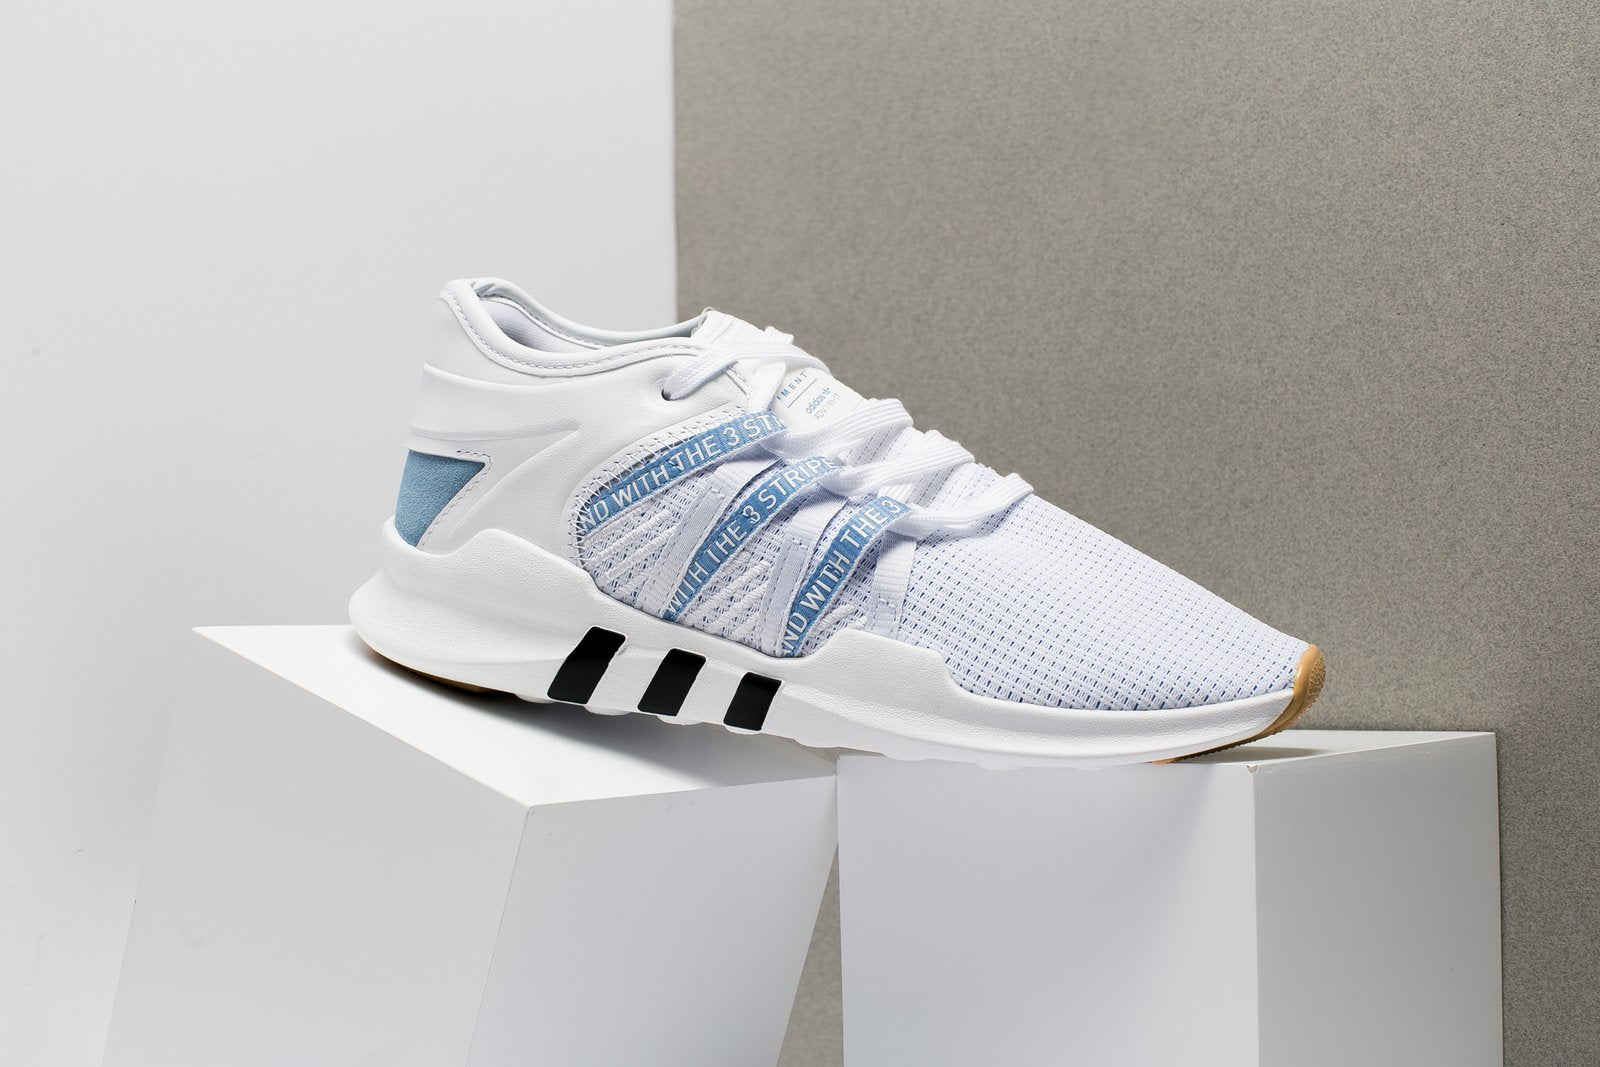 premium selection 11f3c 99870 ADIDAS EQT RACING ADV WOMENS